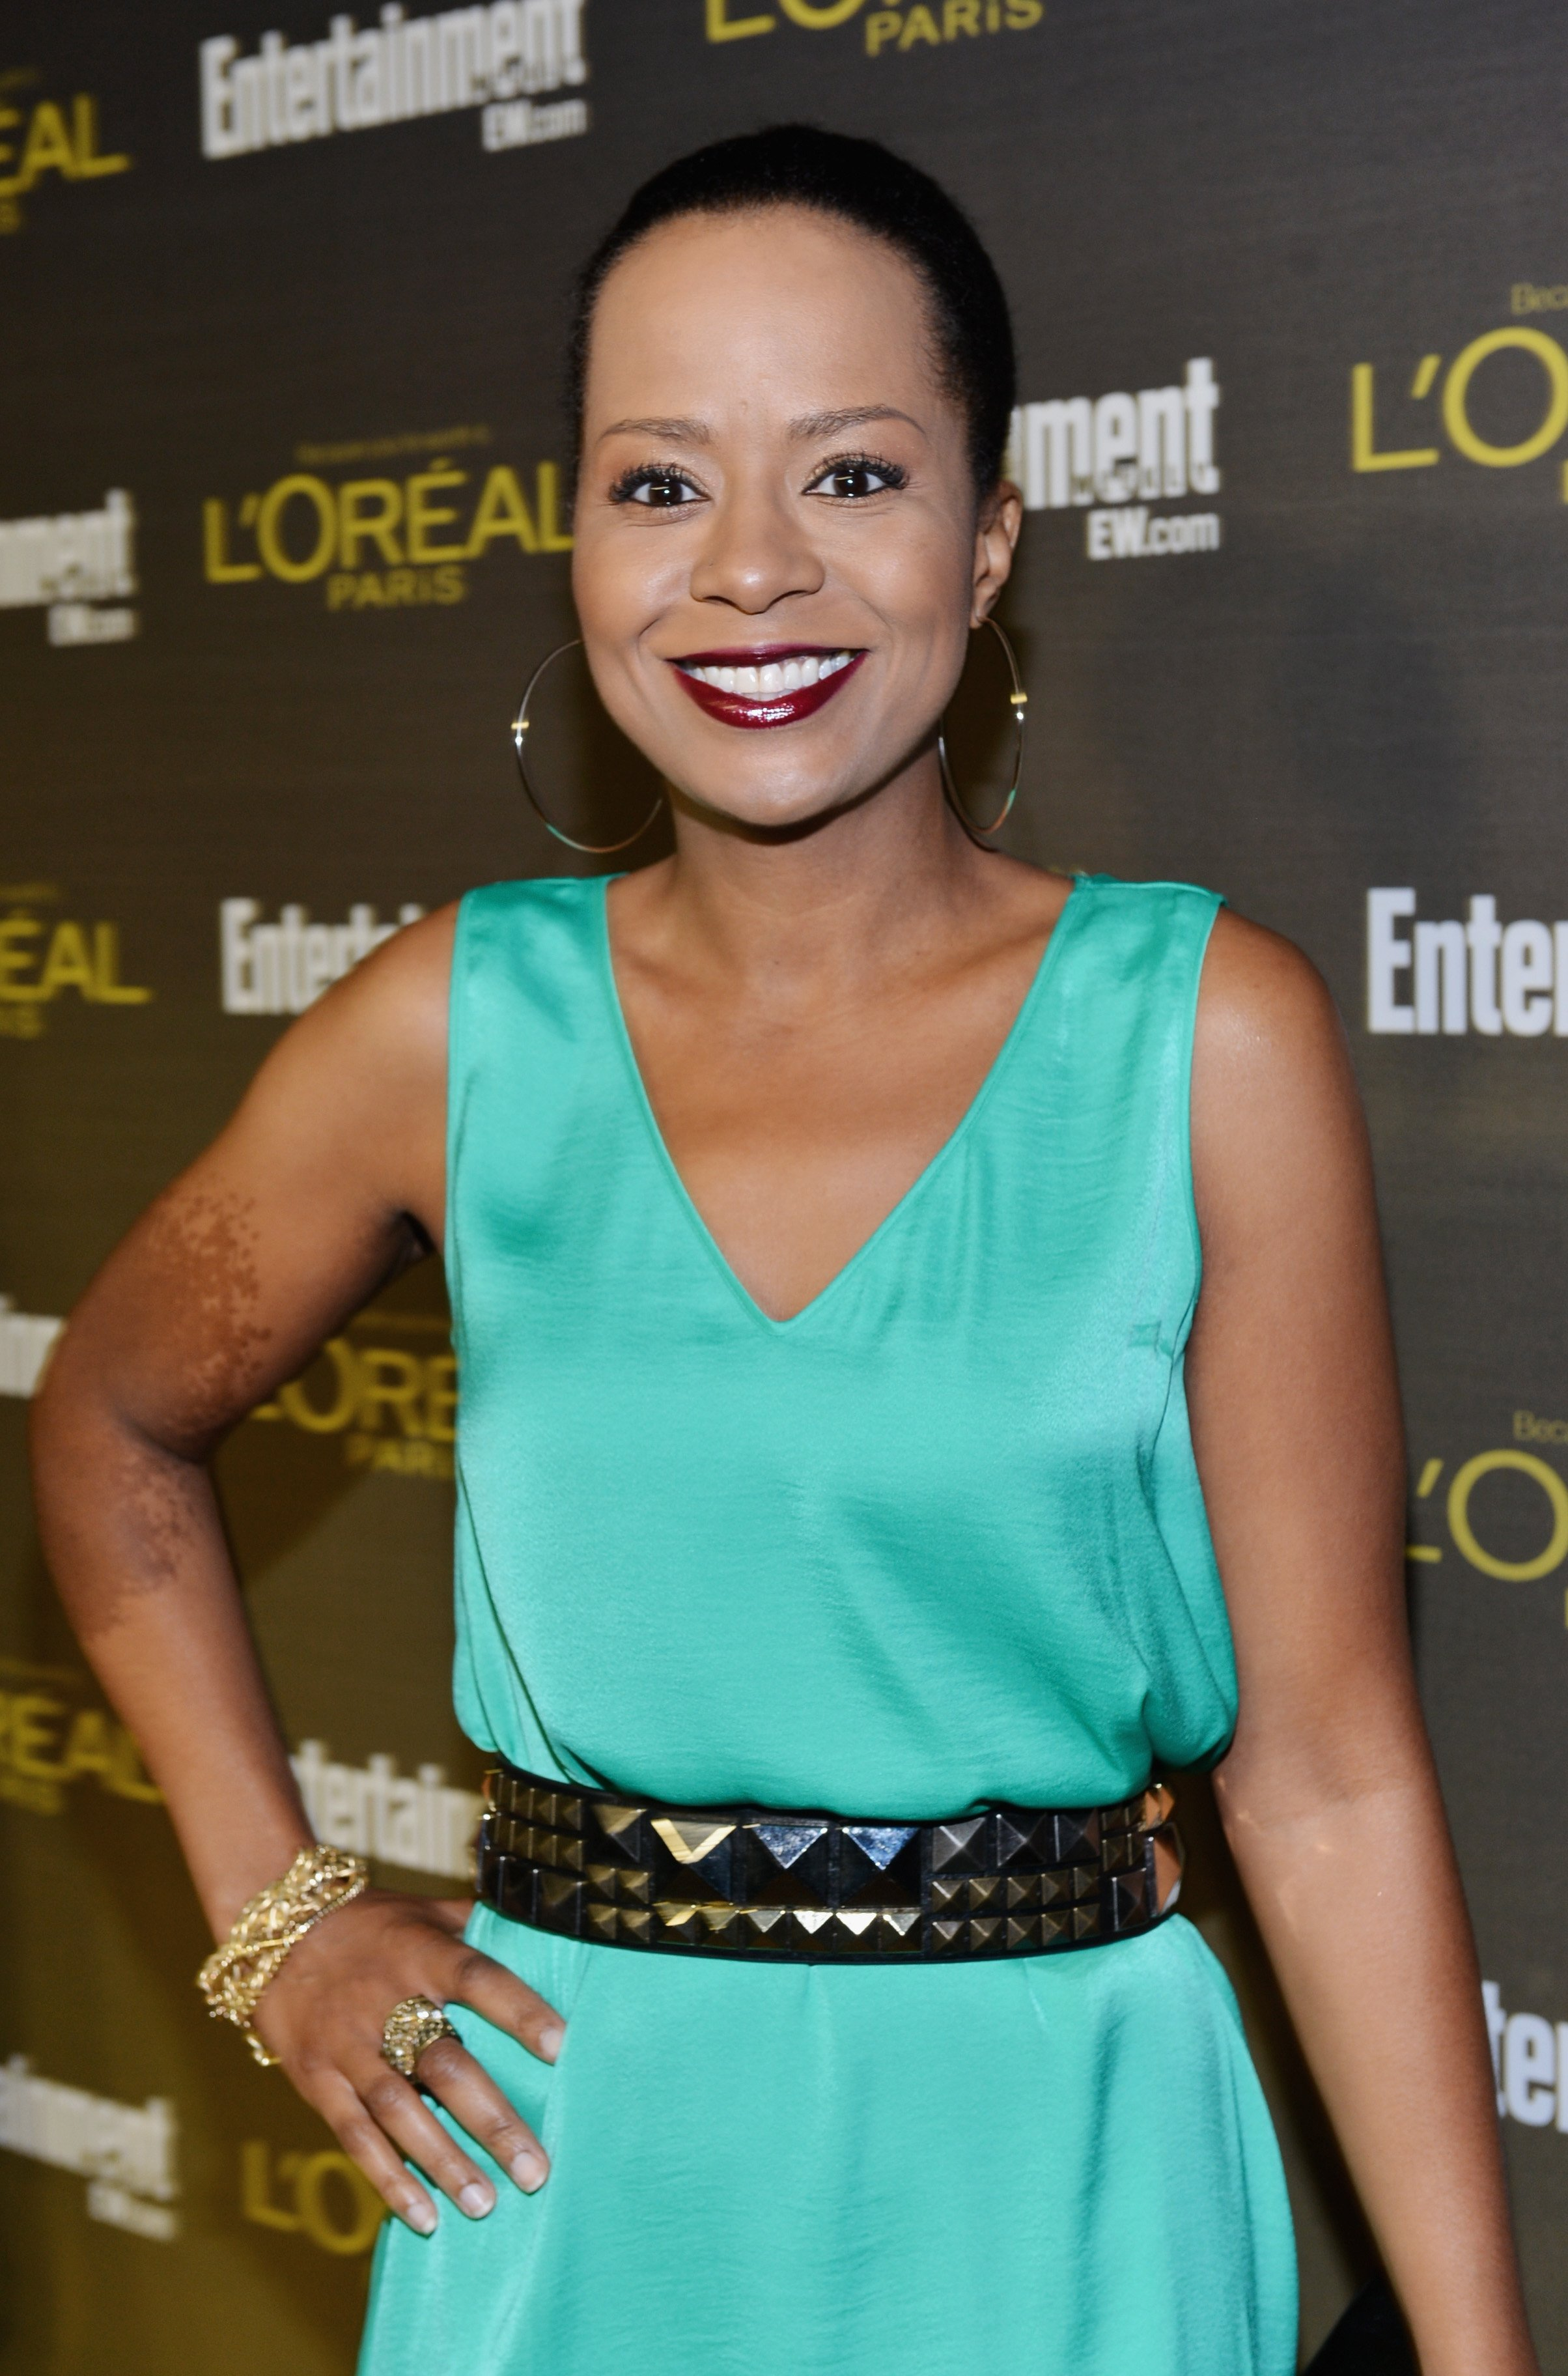 Tempestt Bledsoe at the 2012 Entertainment Weekly Pre-Emmy Party on September 21, 2012 in West Hollywood, California | Photo: Getty Images